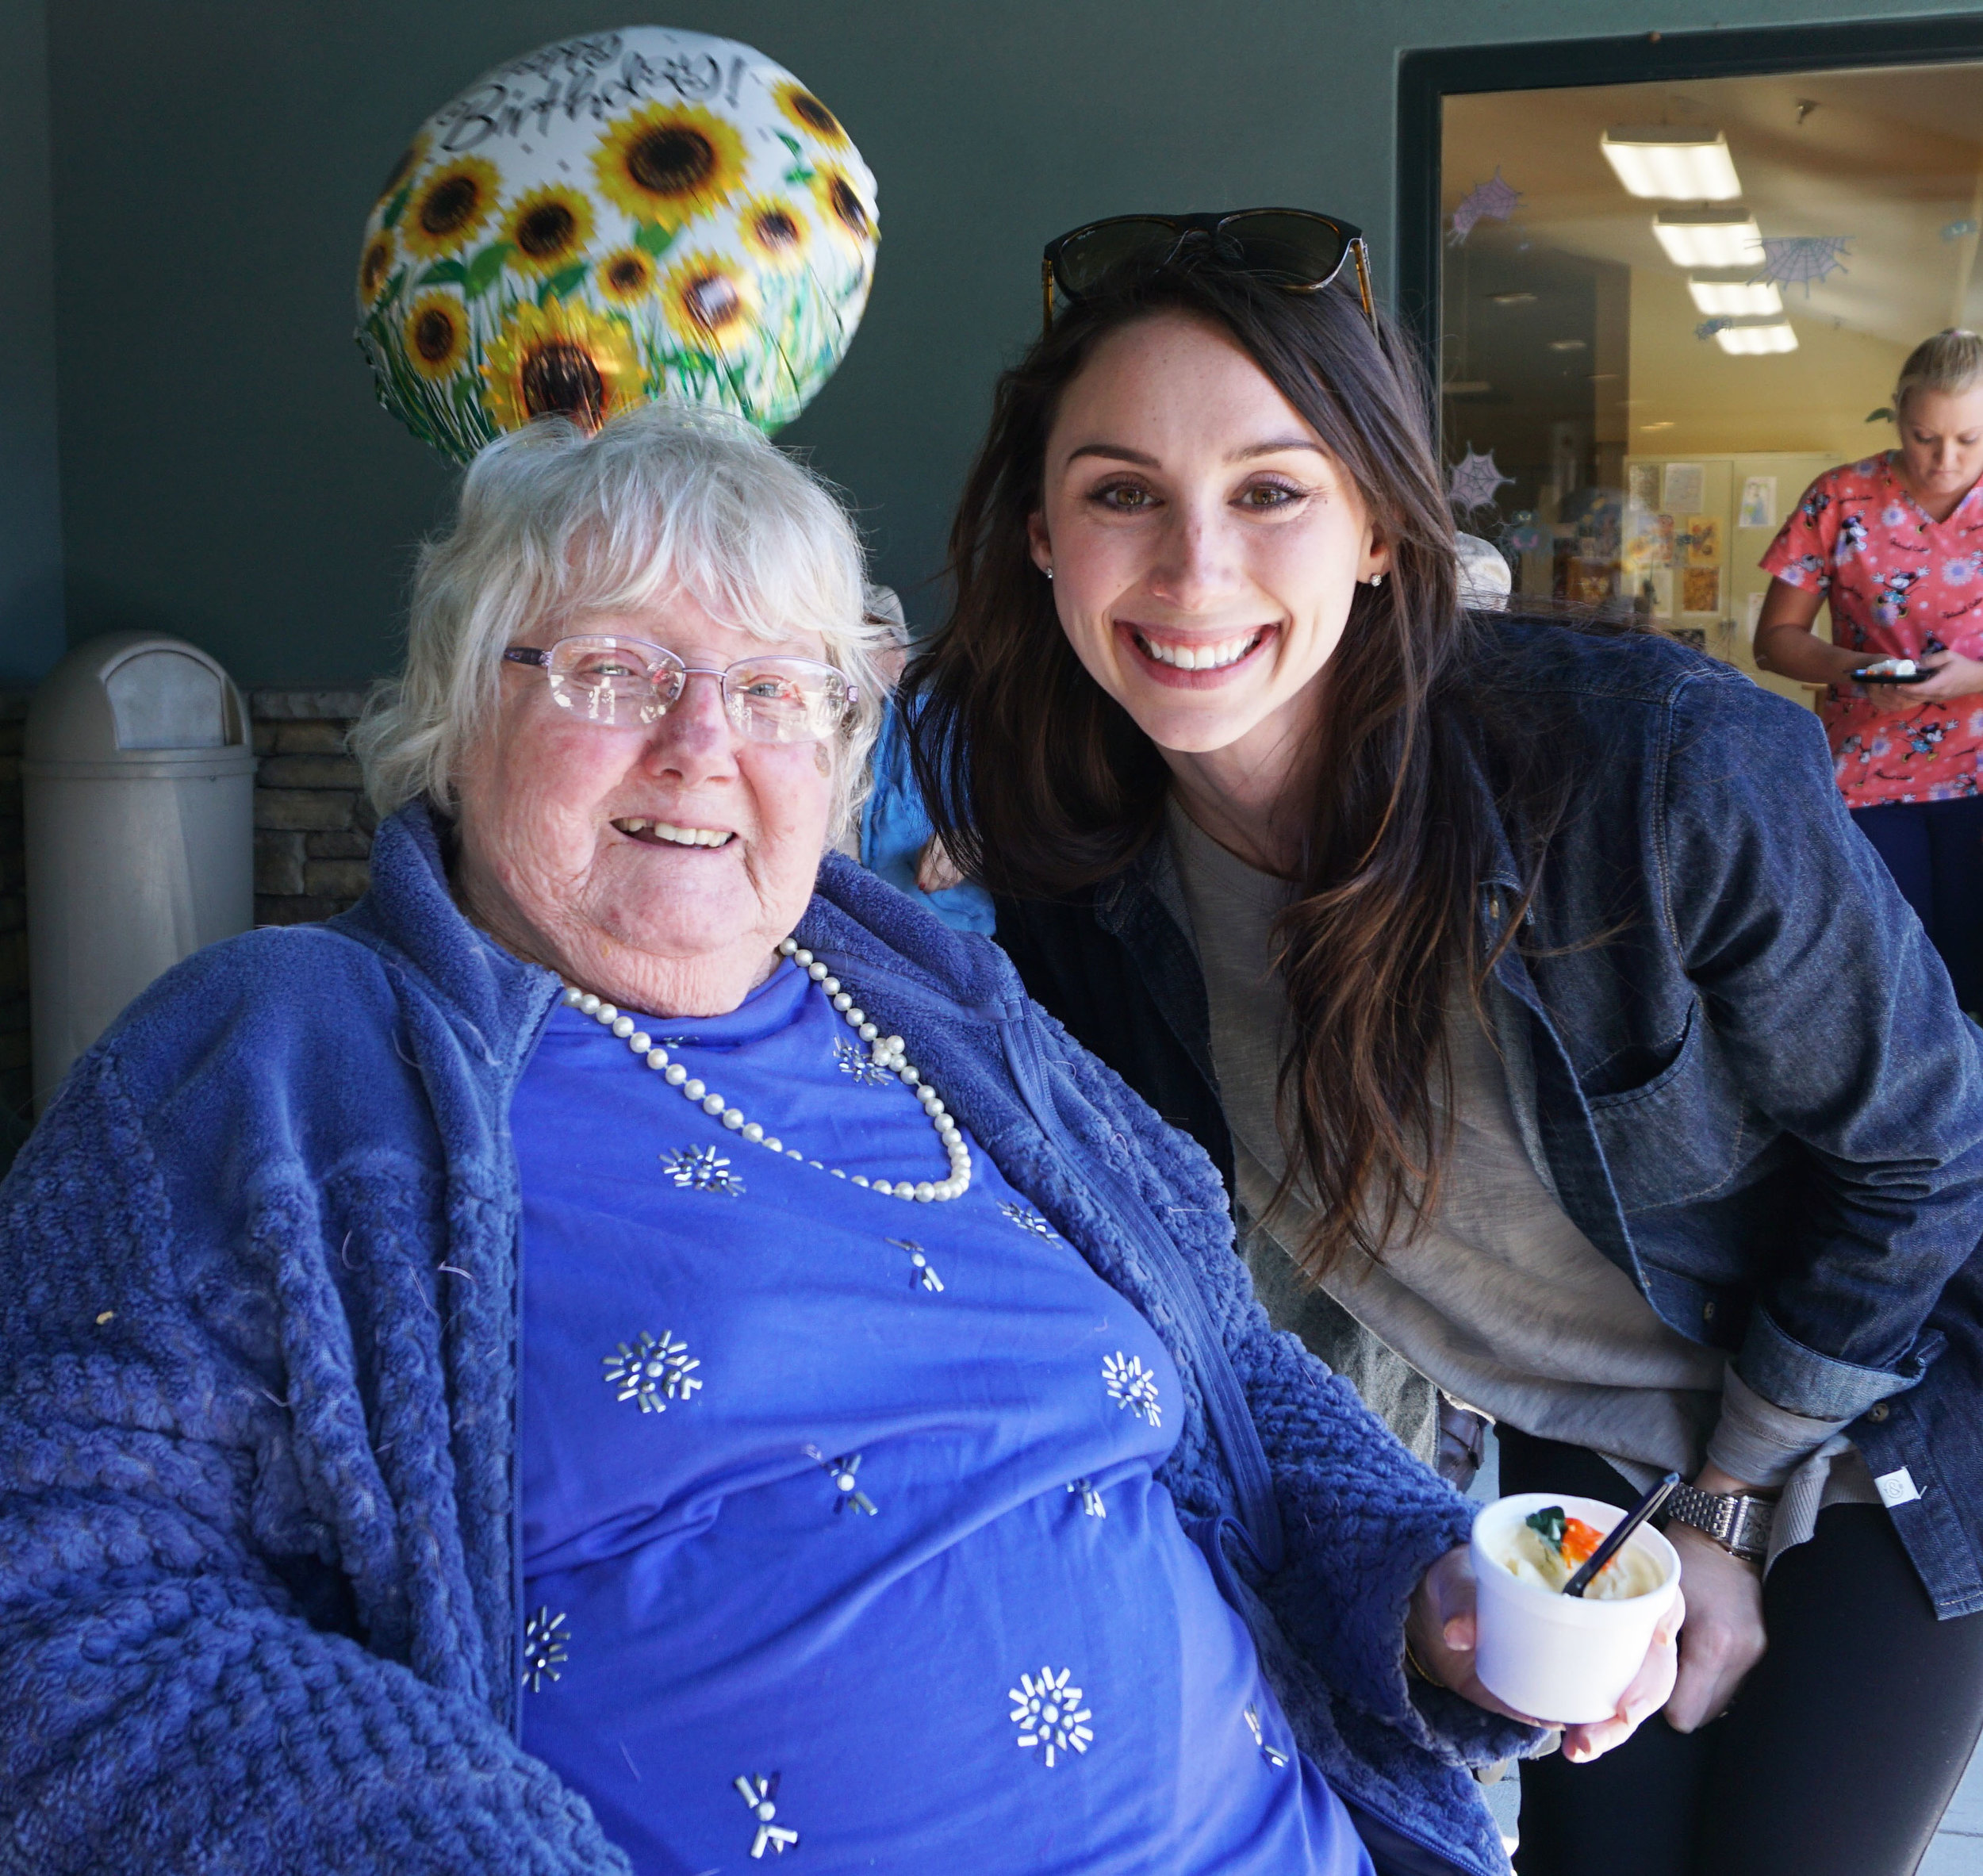 HAPPY DAY: Laura celebrated her birthday with a party of friends and staff, including Aubree Olmstead, Columbia Basin Care's executive director.